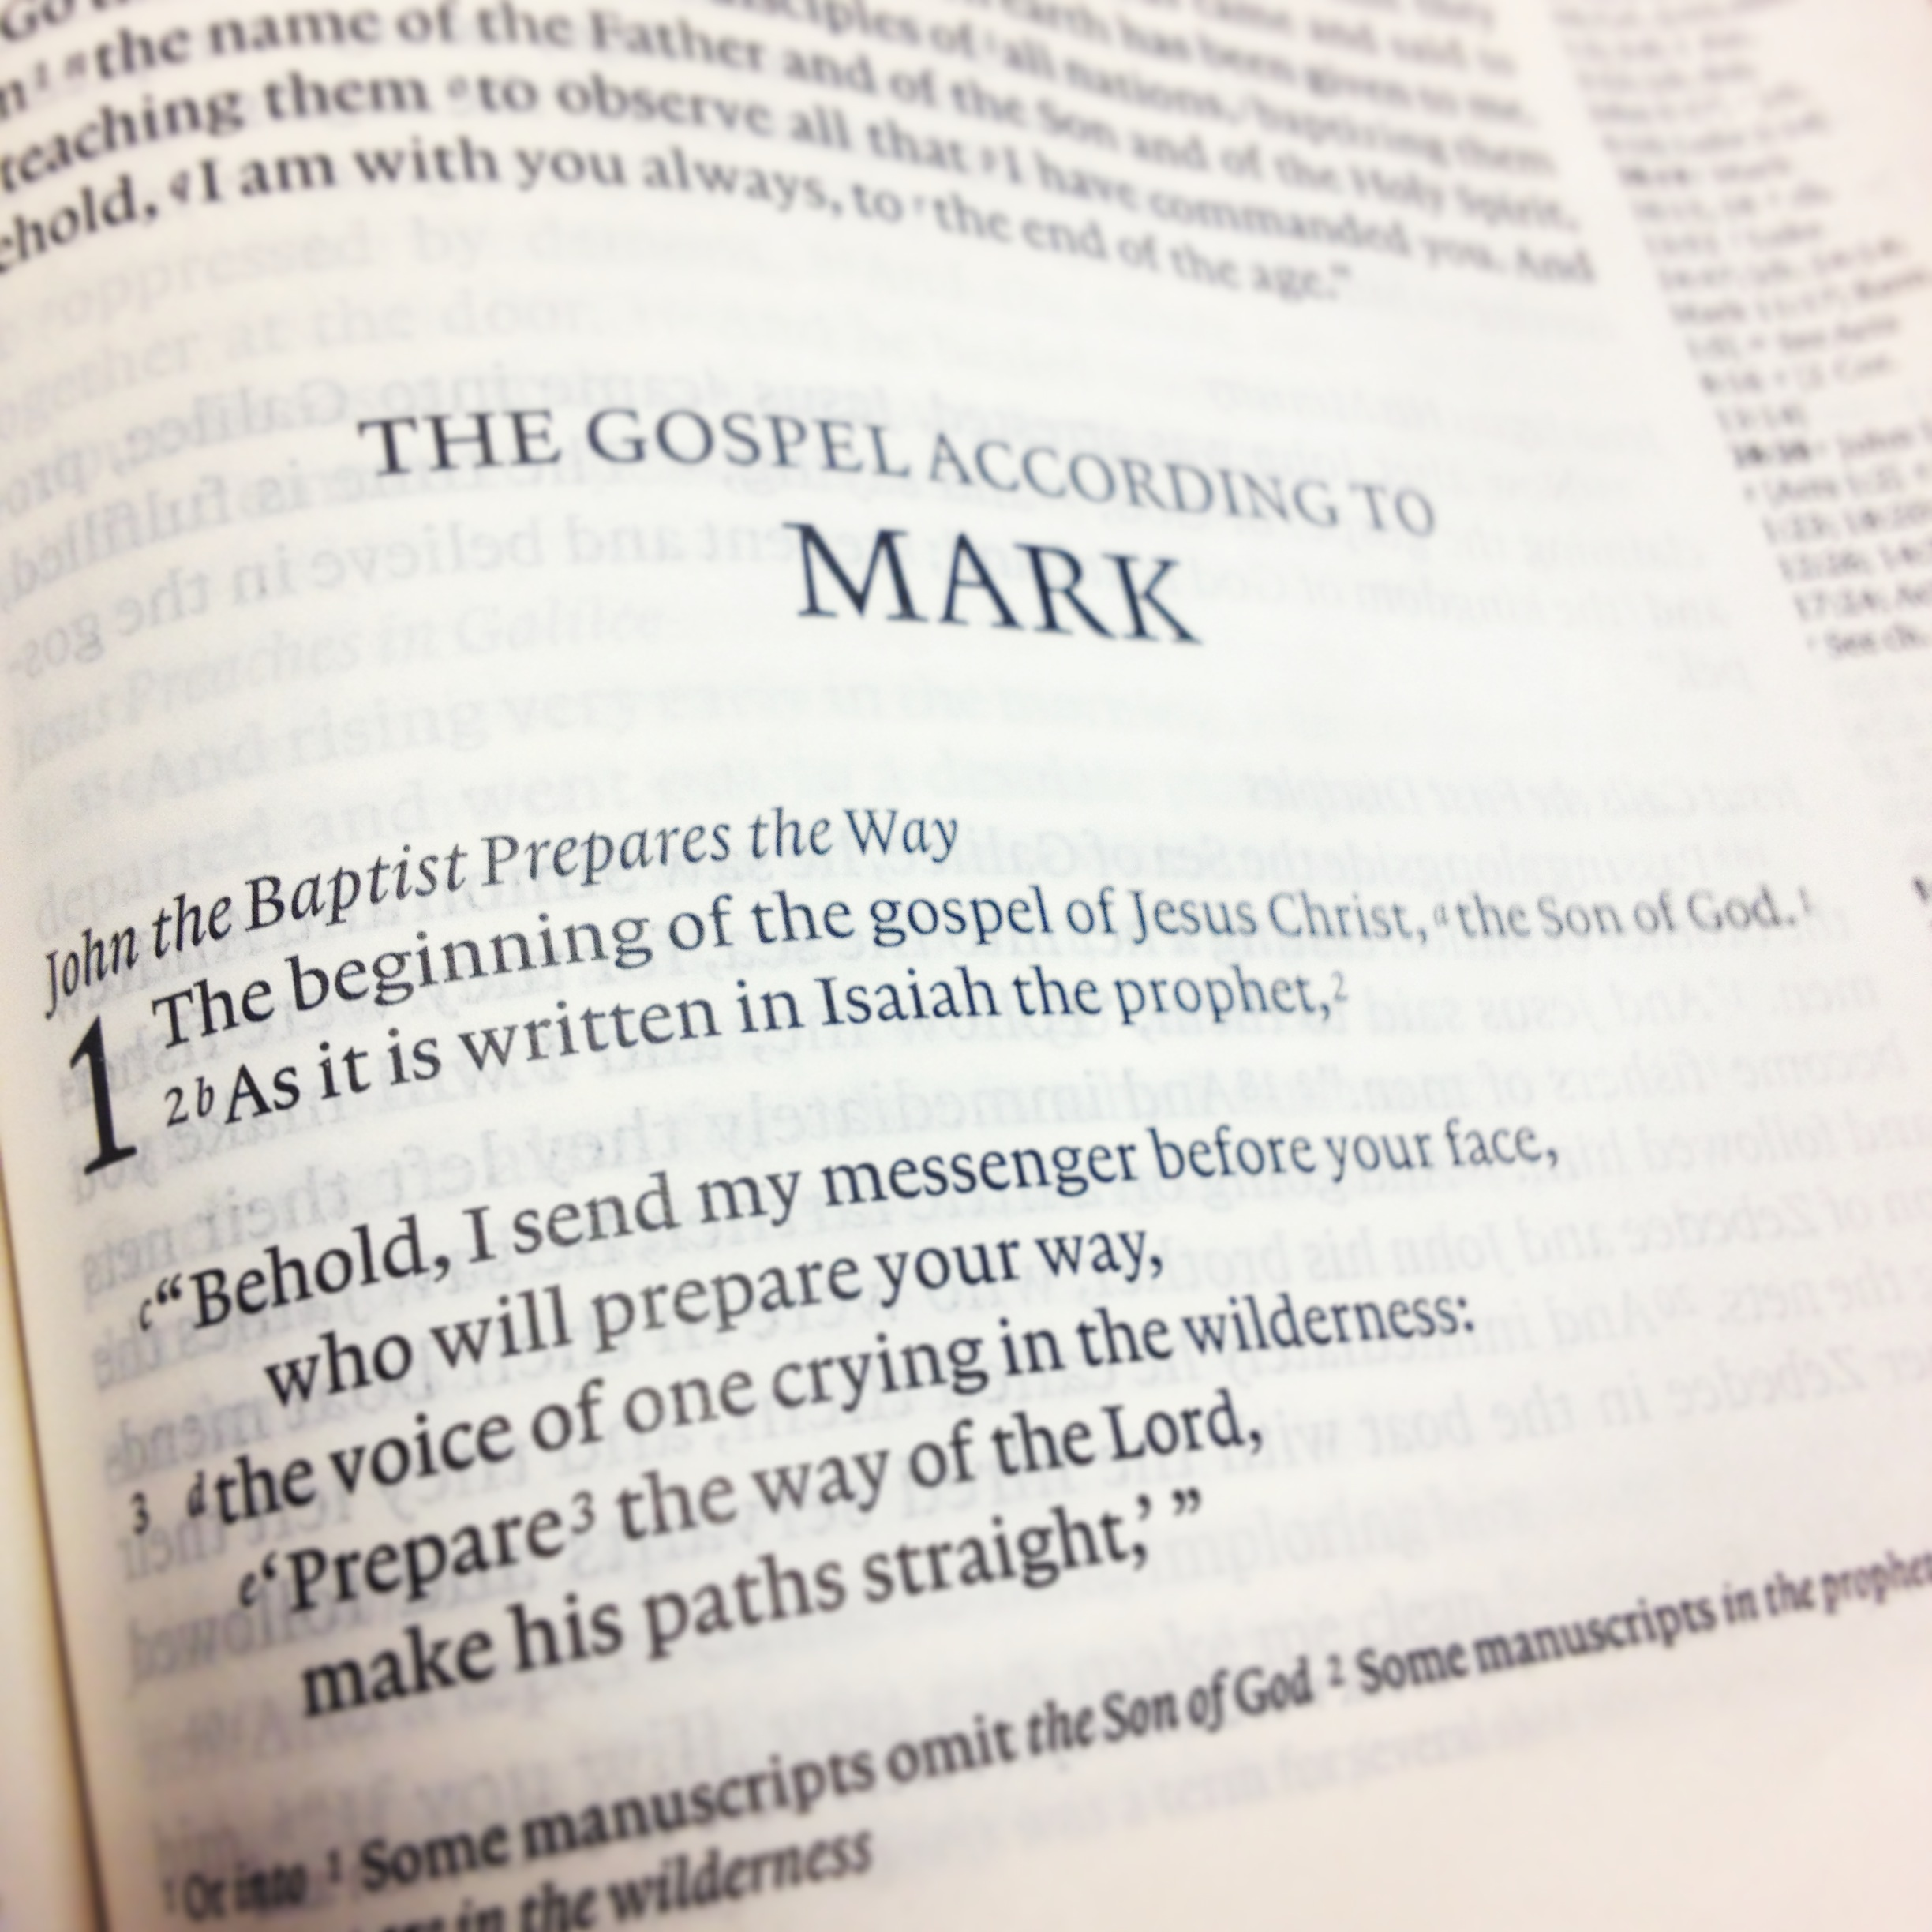 review the gospel according to mark The gospel according to mark is the seventh volume published in the pillar new testament commentary series edited by d a carson the series is aimed primarily at pastors and teachers of the bible and thus has the goal of elucidating, in the most straightforward manner, the biblical text in its canonical form.